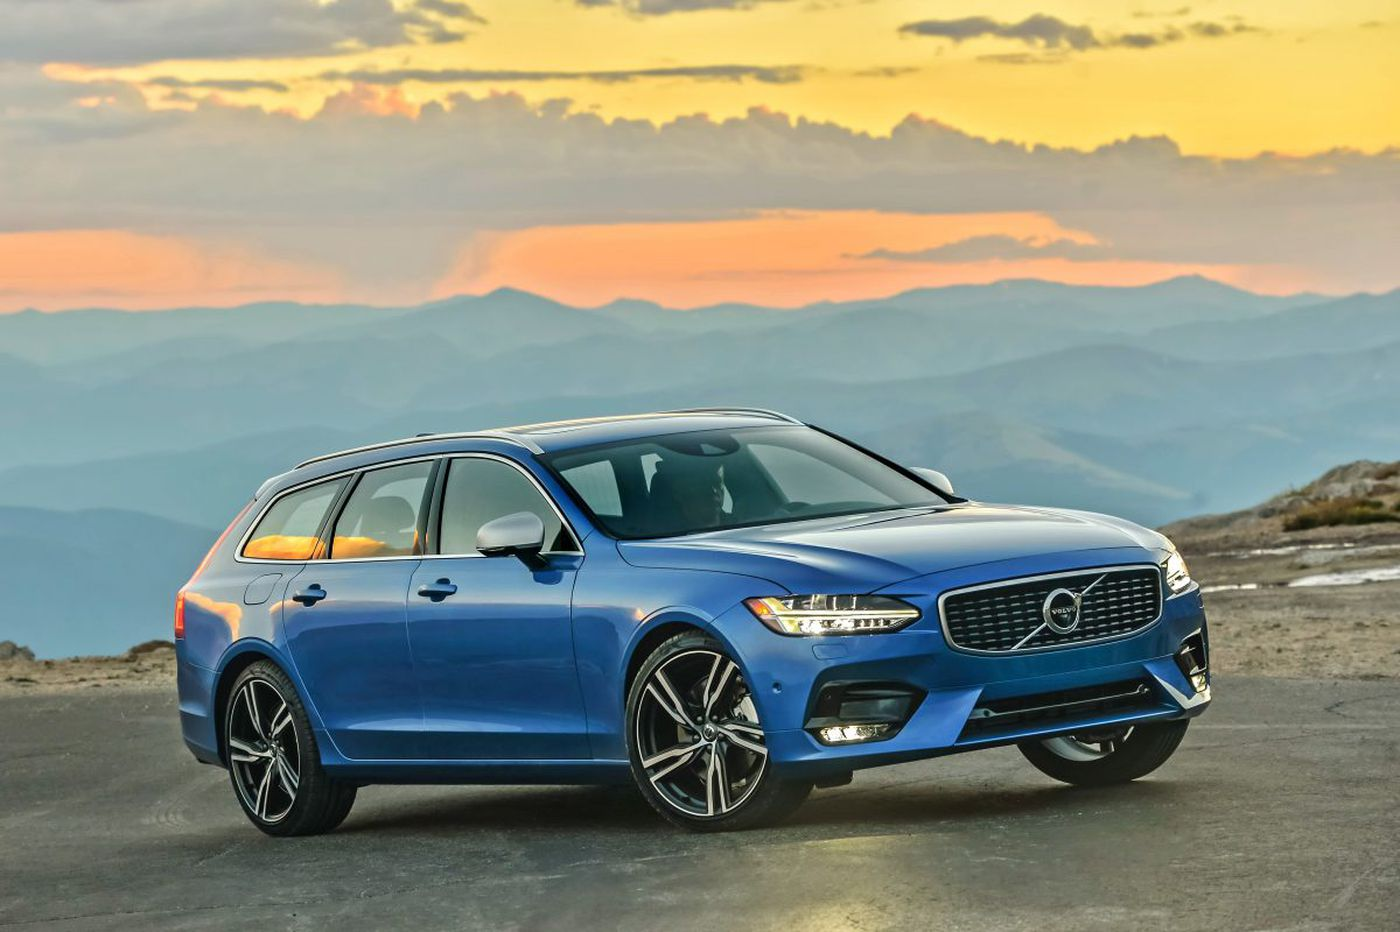 Volvo, reborn and reenergized, delivers three lively new models